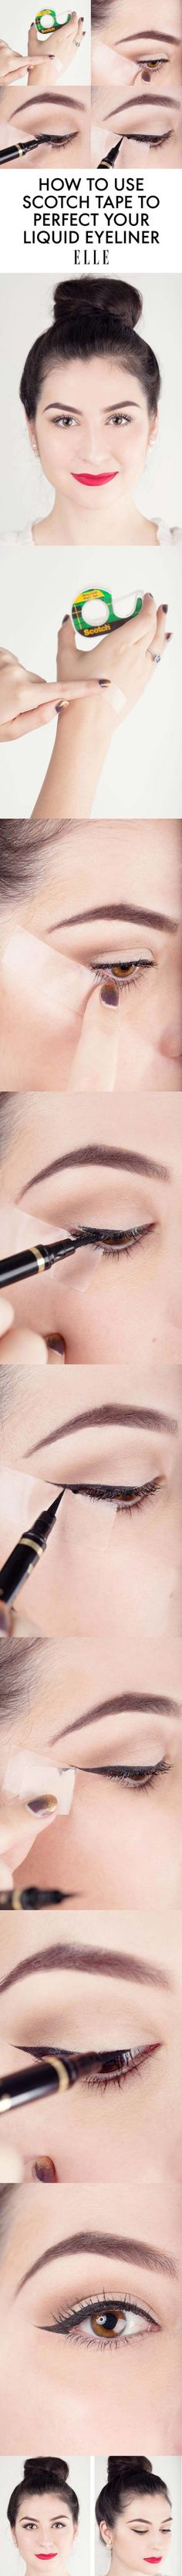 Beauty Hacks for Teens - Eyeliner Tape Trick - DIY Makeup Tips and Hacks for Skin, Hairstyles, Acne, Bras and Everything in Between - Pictures and Video Tutorials for Girls of All Shapes and Sizes Whether You're Fit or Want to Lose Weight - Get in Shape for Summer with These Awesome Ideas - thegoddess.com/beauty-hacks-teens